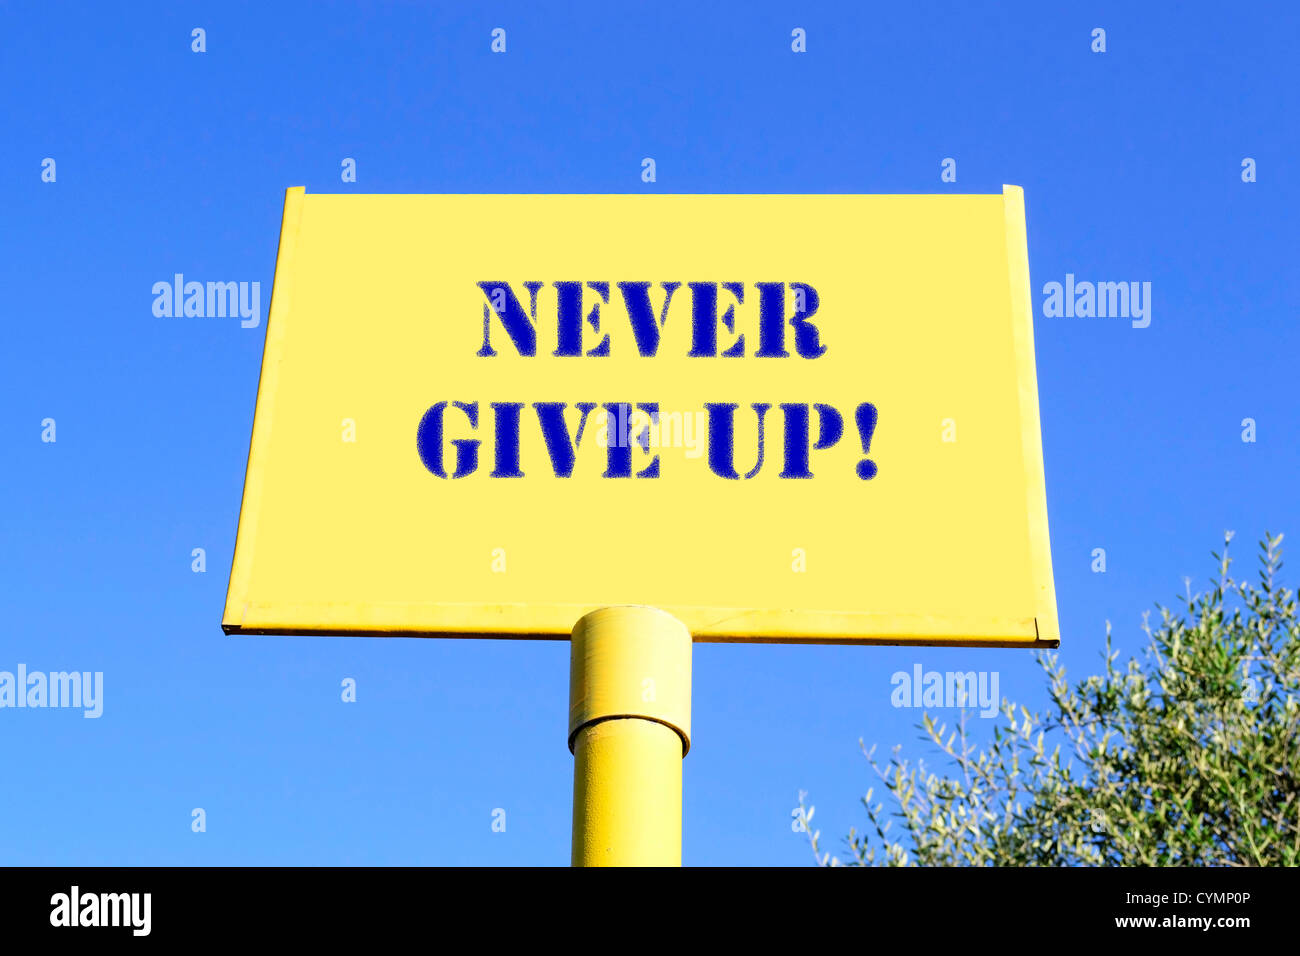 'never give up!' writing on a yellow sign under a clear blue sky - Stock Image